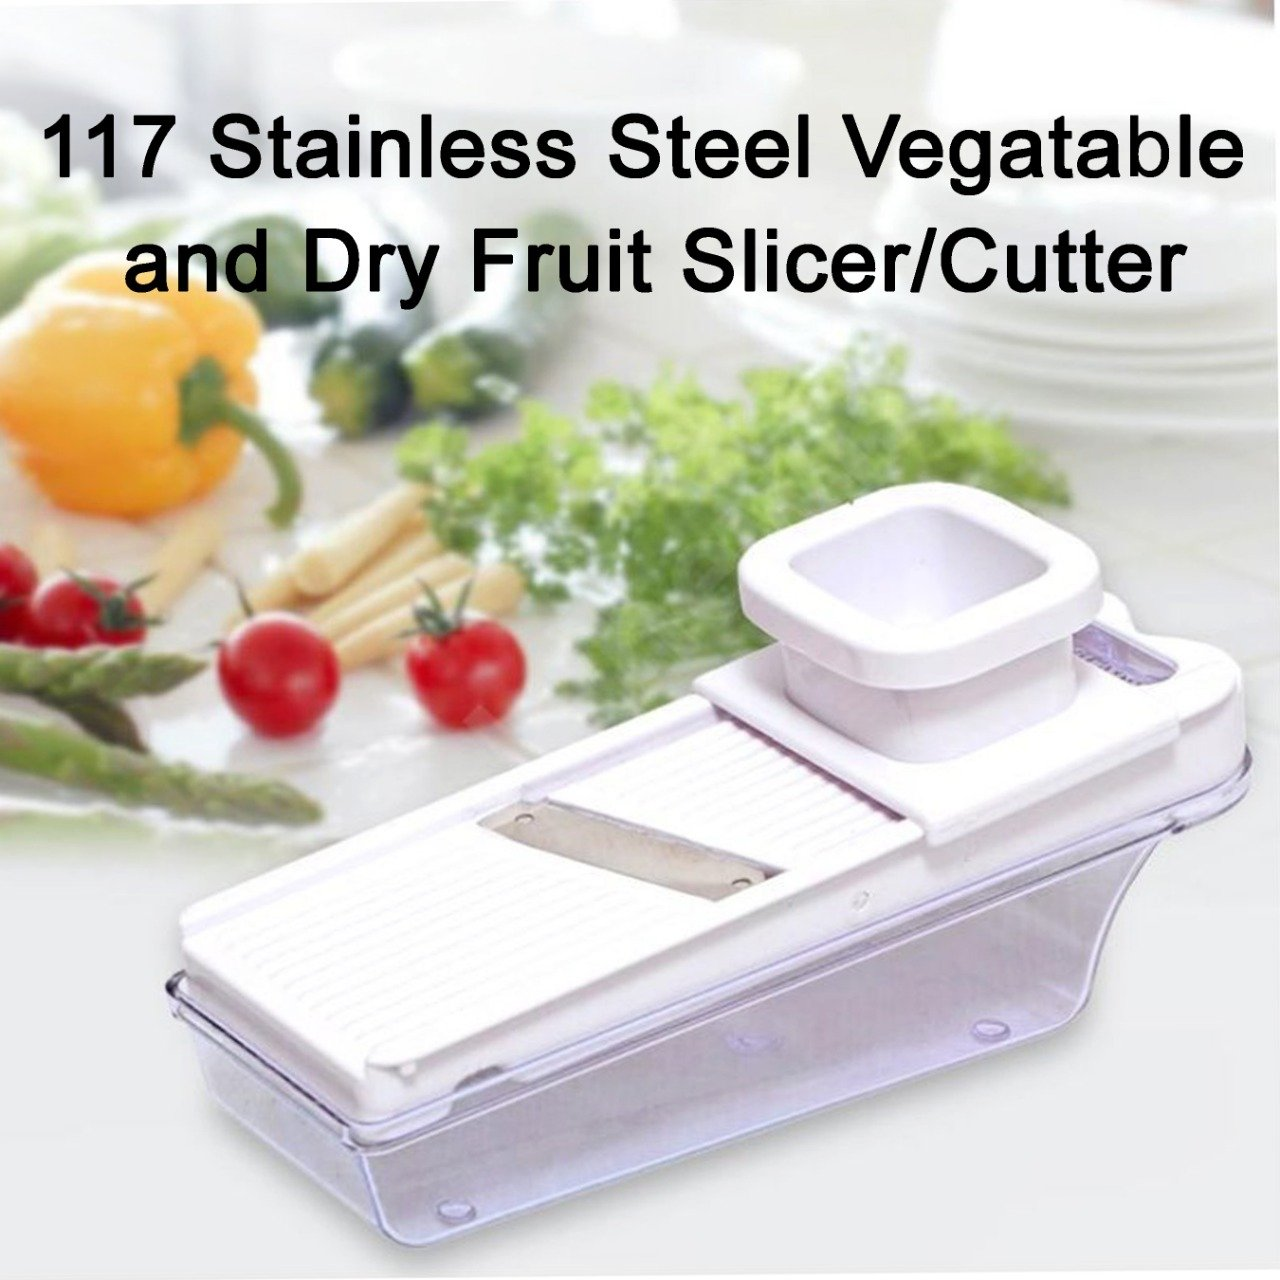 117 Stainless Steel Vegatable and Dry Fruit Slicer/Cutter